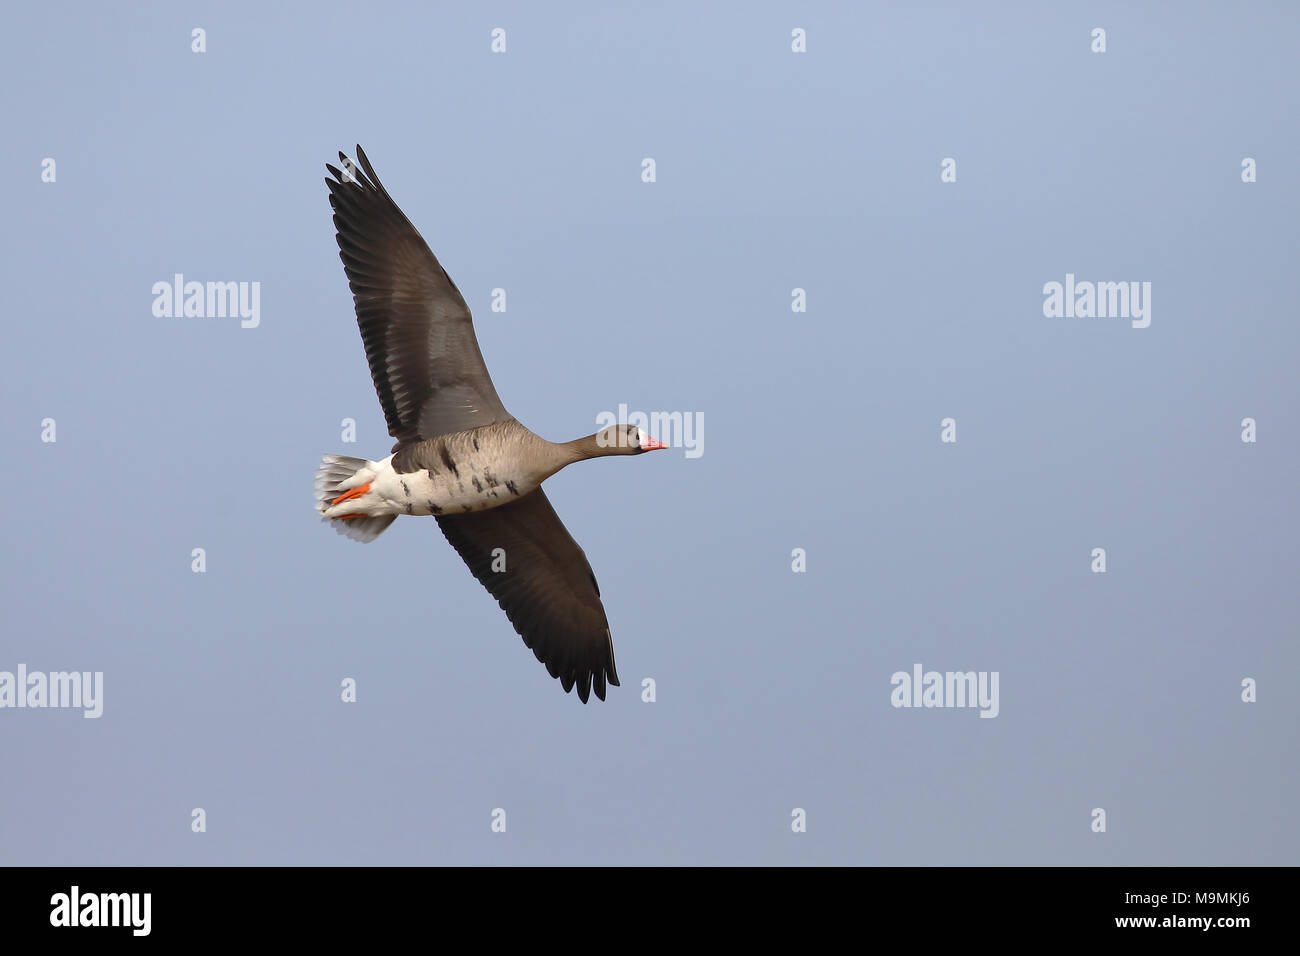 Greater white-fronted goose (Anser albifrons) in flight, Bislicher Insel, North Rhine-Westphalia, Germany - Stock Image